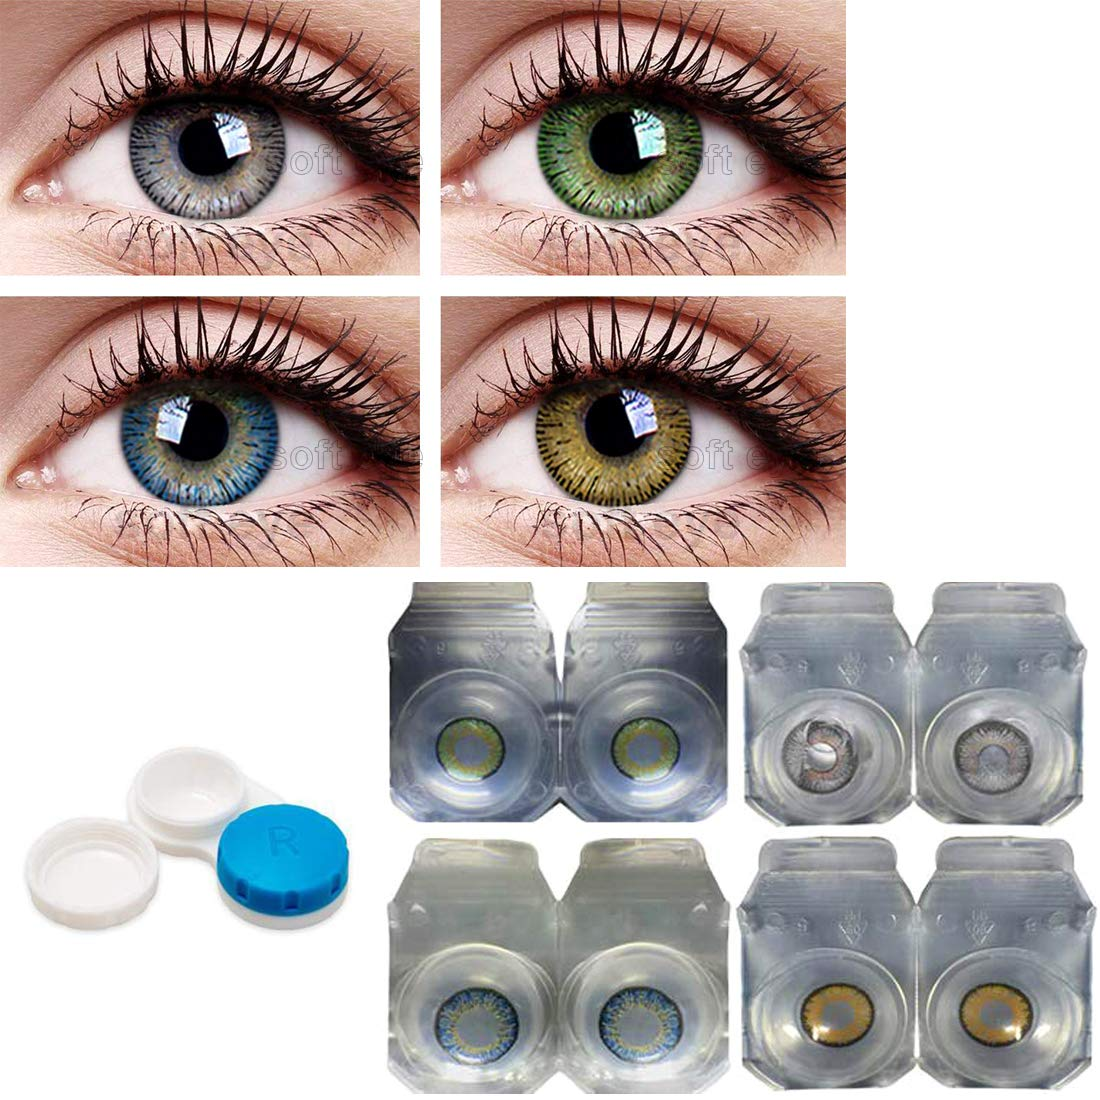 1Pair 3 Tone Colored Contact Lenses For Eyes Cosmetic Colorful Beauty Colored Contacts Lenses Blue Color Contact Lens Eye With Case & Solution